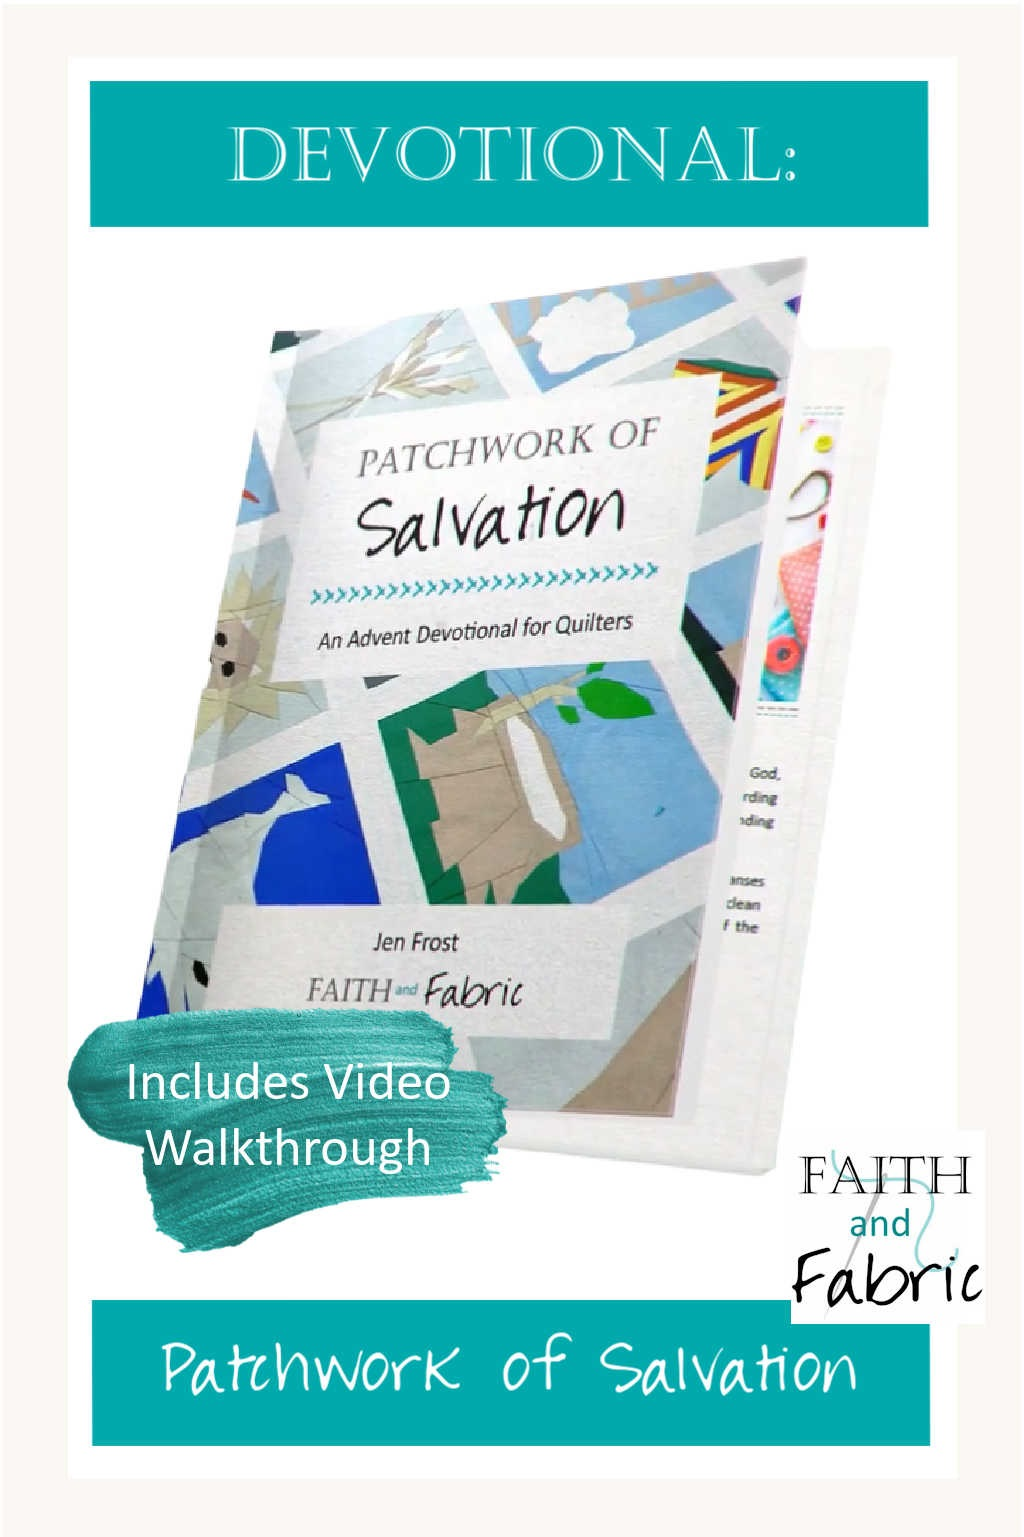 Patchwork of Salvation - An Advent Devotional for Quilters based on the Jesse Tree Quilt Pattern